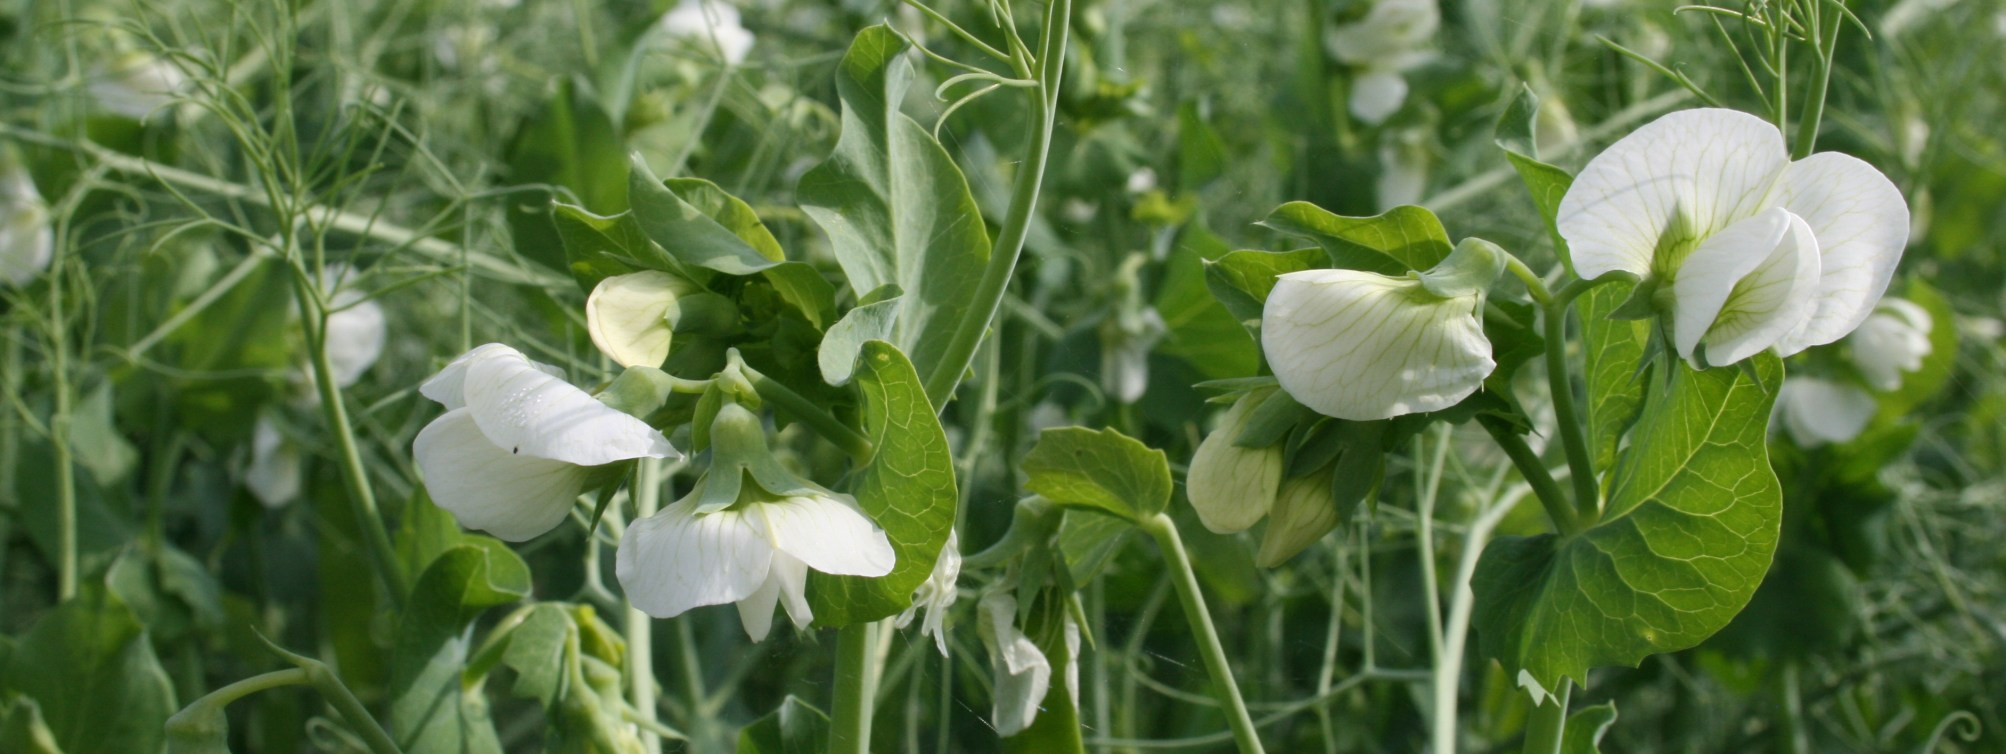 Pea Plants in Field